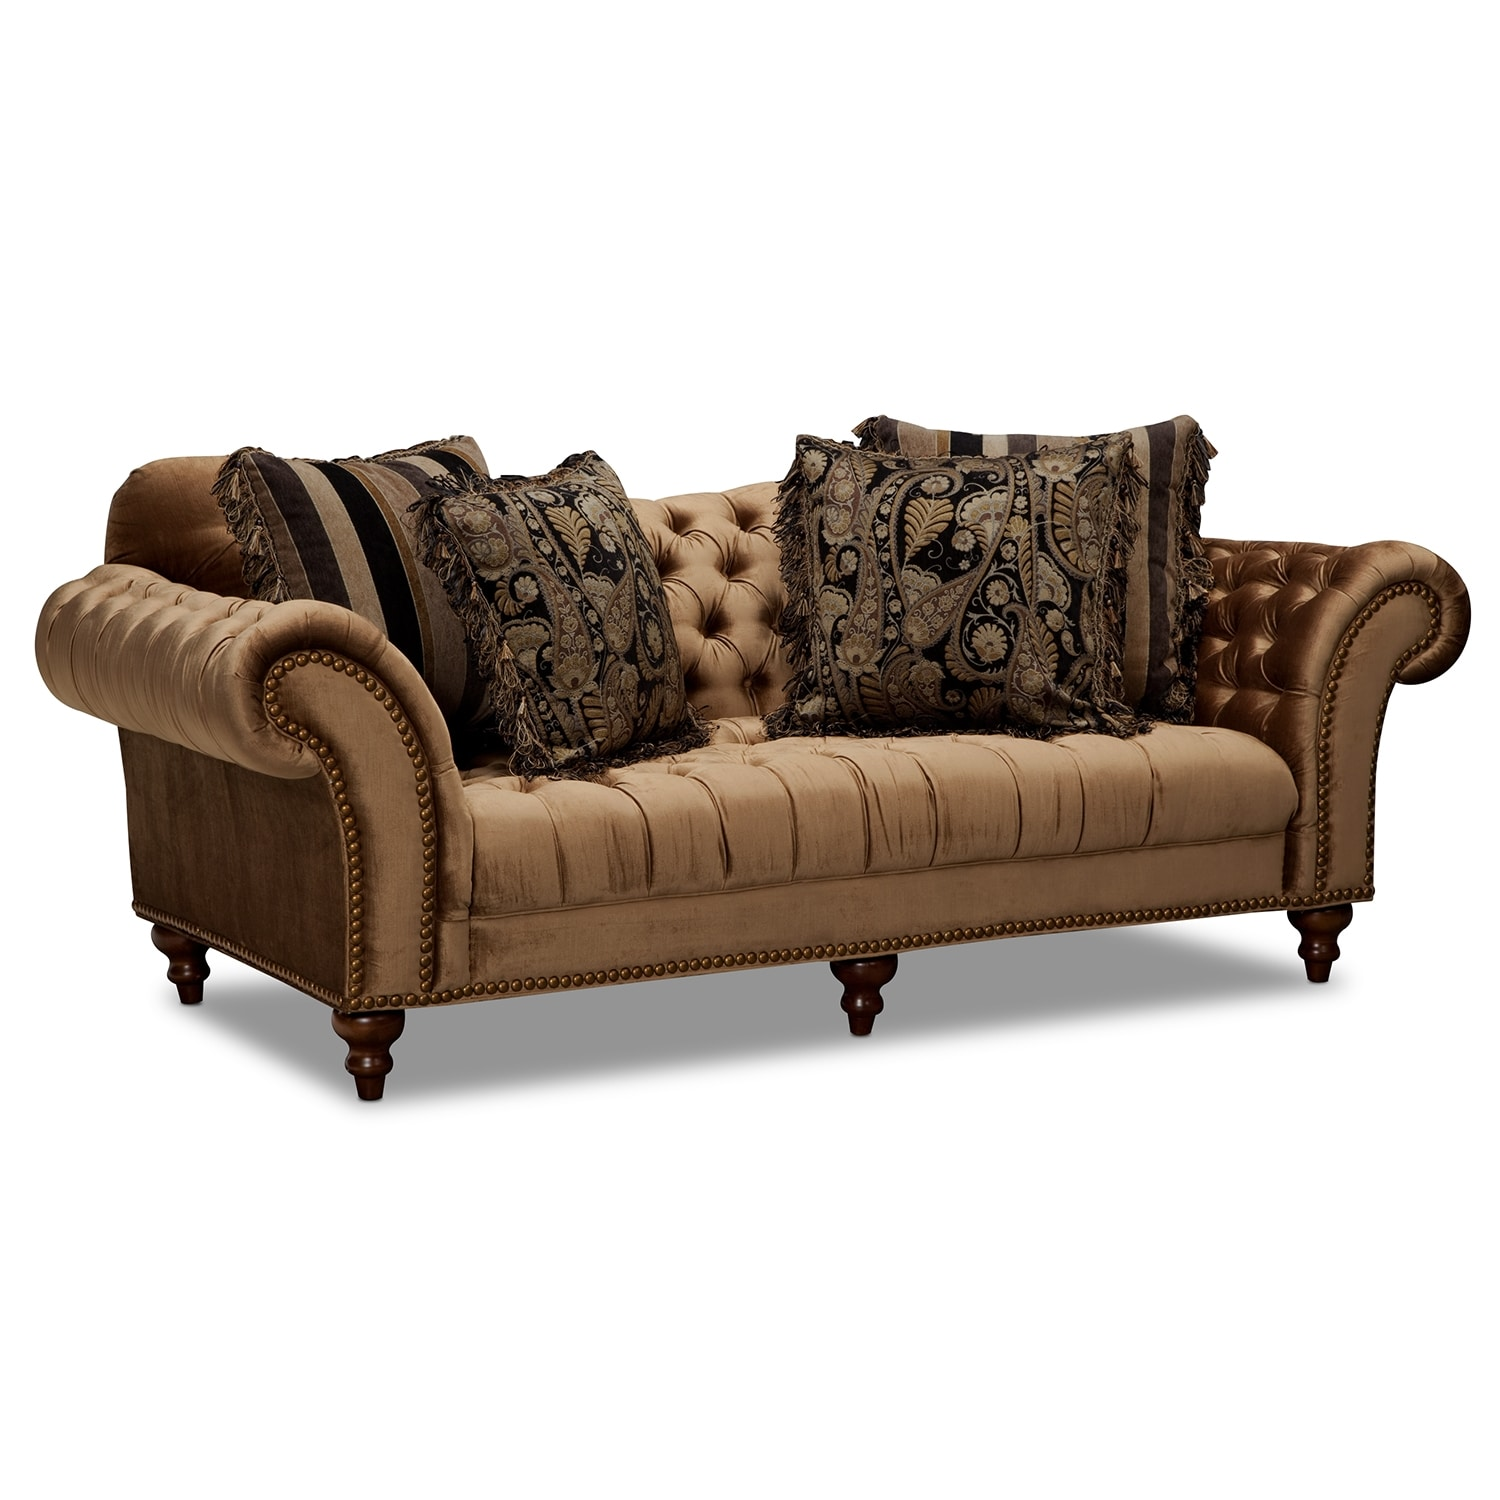 Futon Etage The Brittney Living Room Collection Bronze American Signature